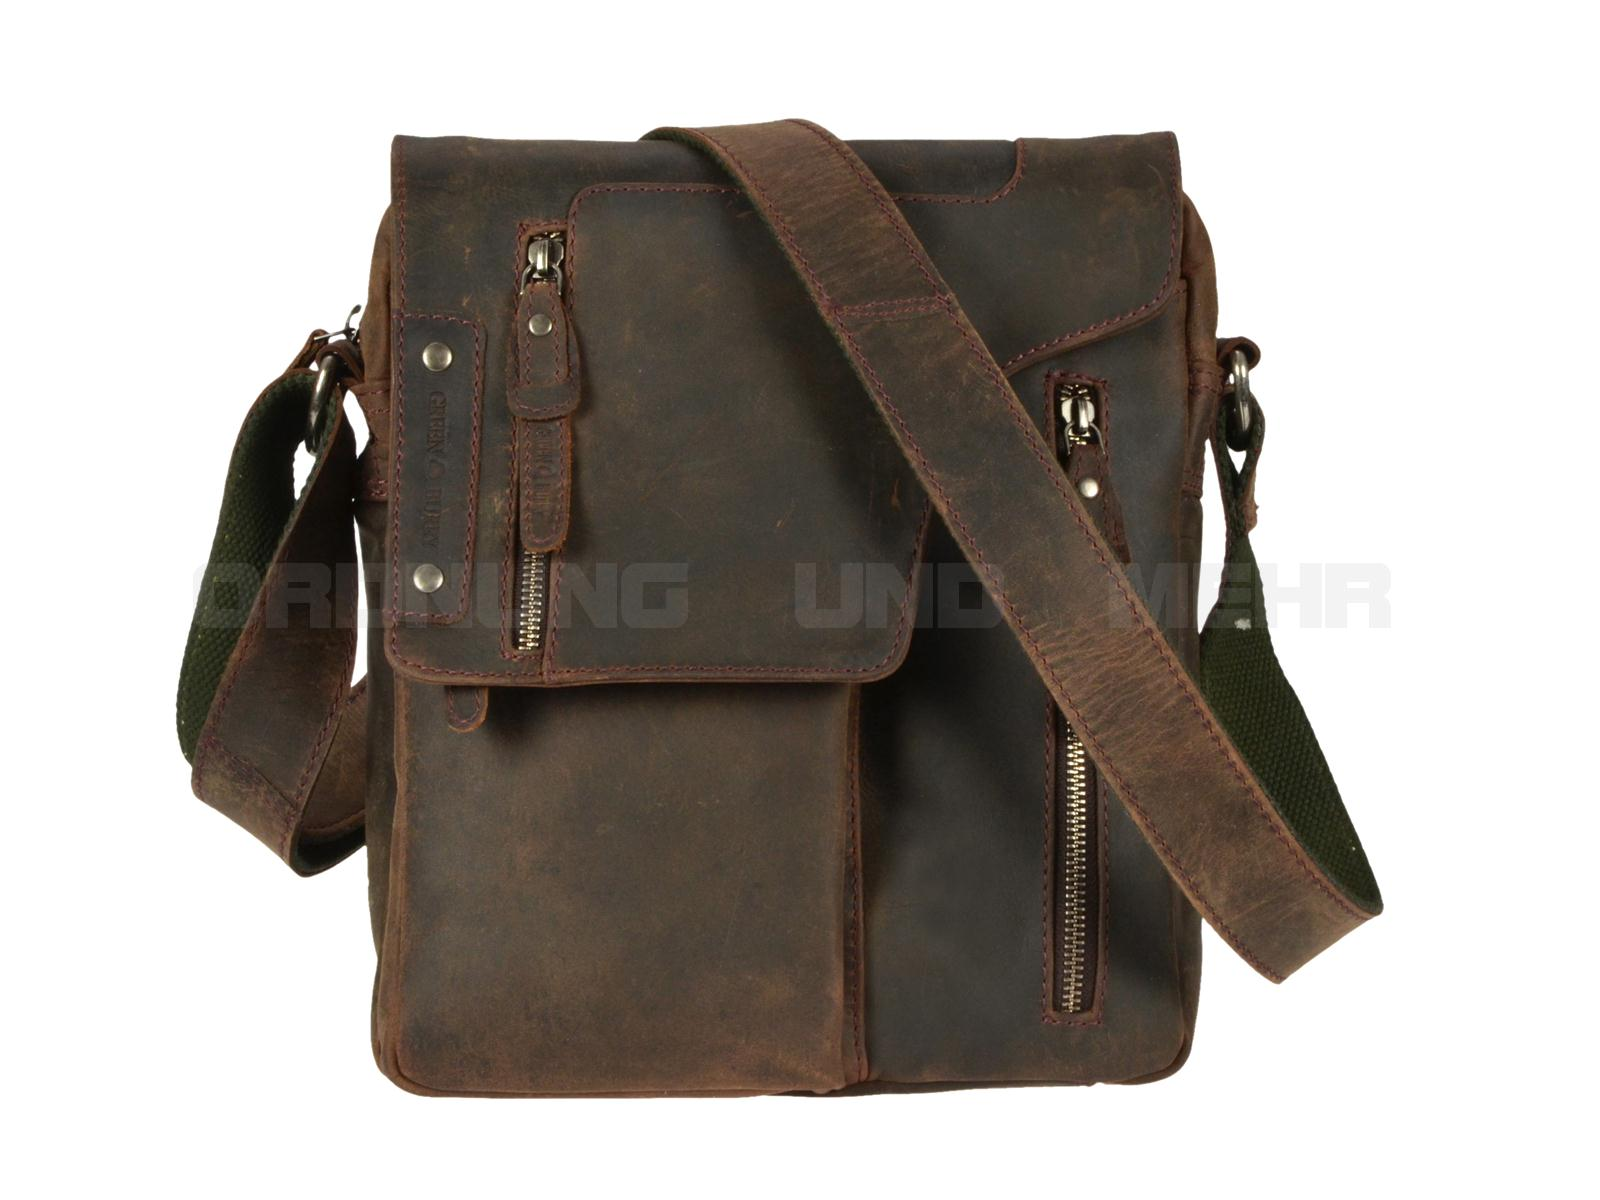 Coole Ledertaschen - der Greenburry Revolver Bag 1965-22 aus der Vintage Revival Serie in antikbraun